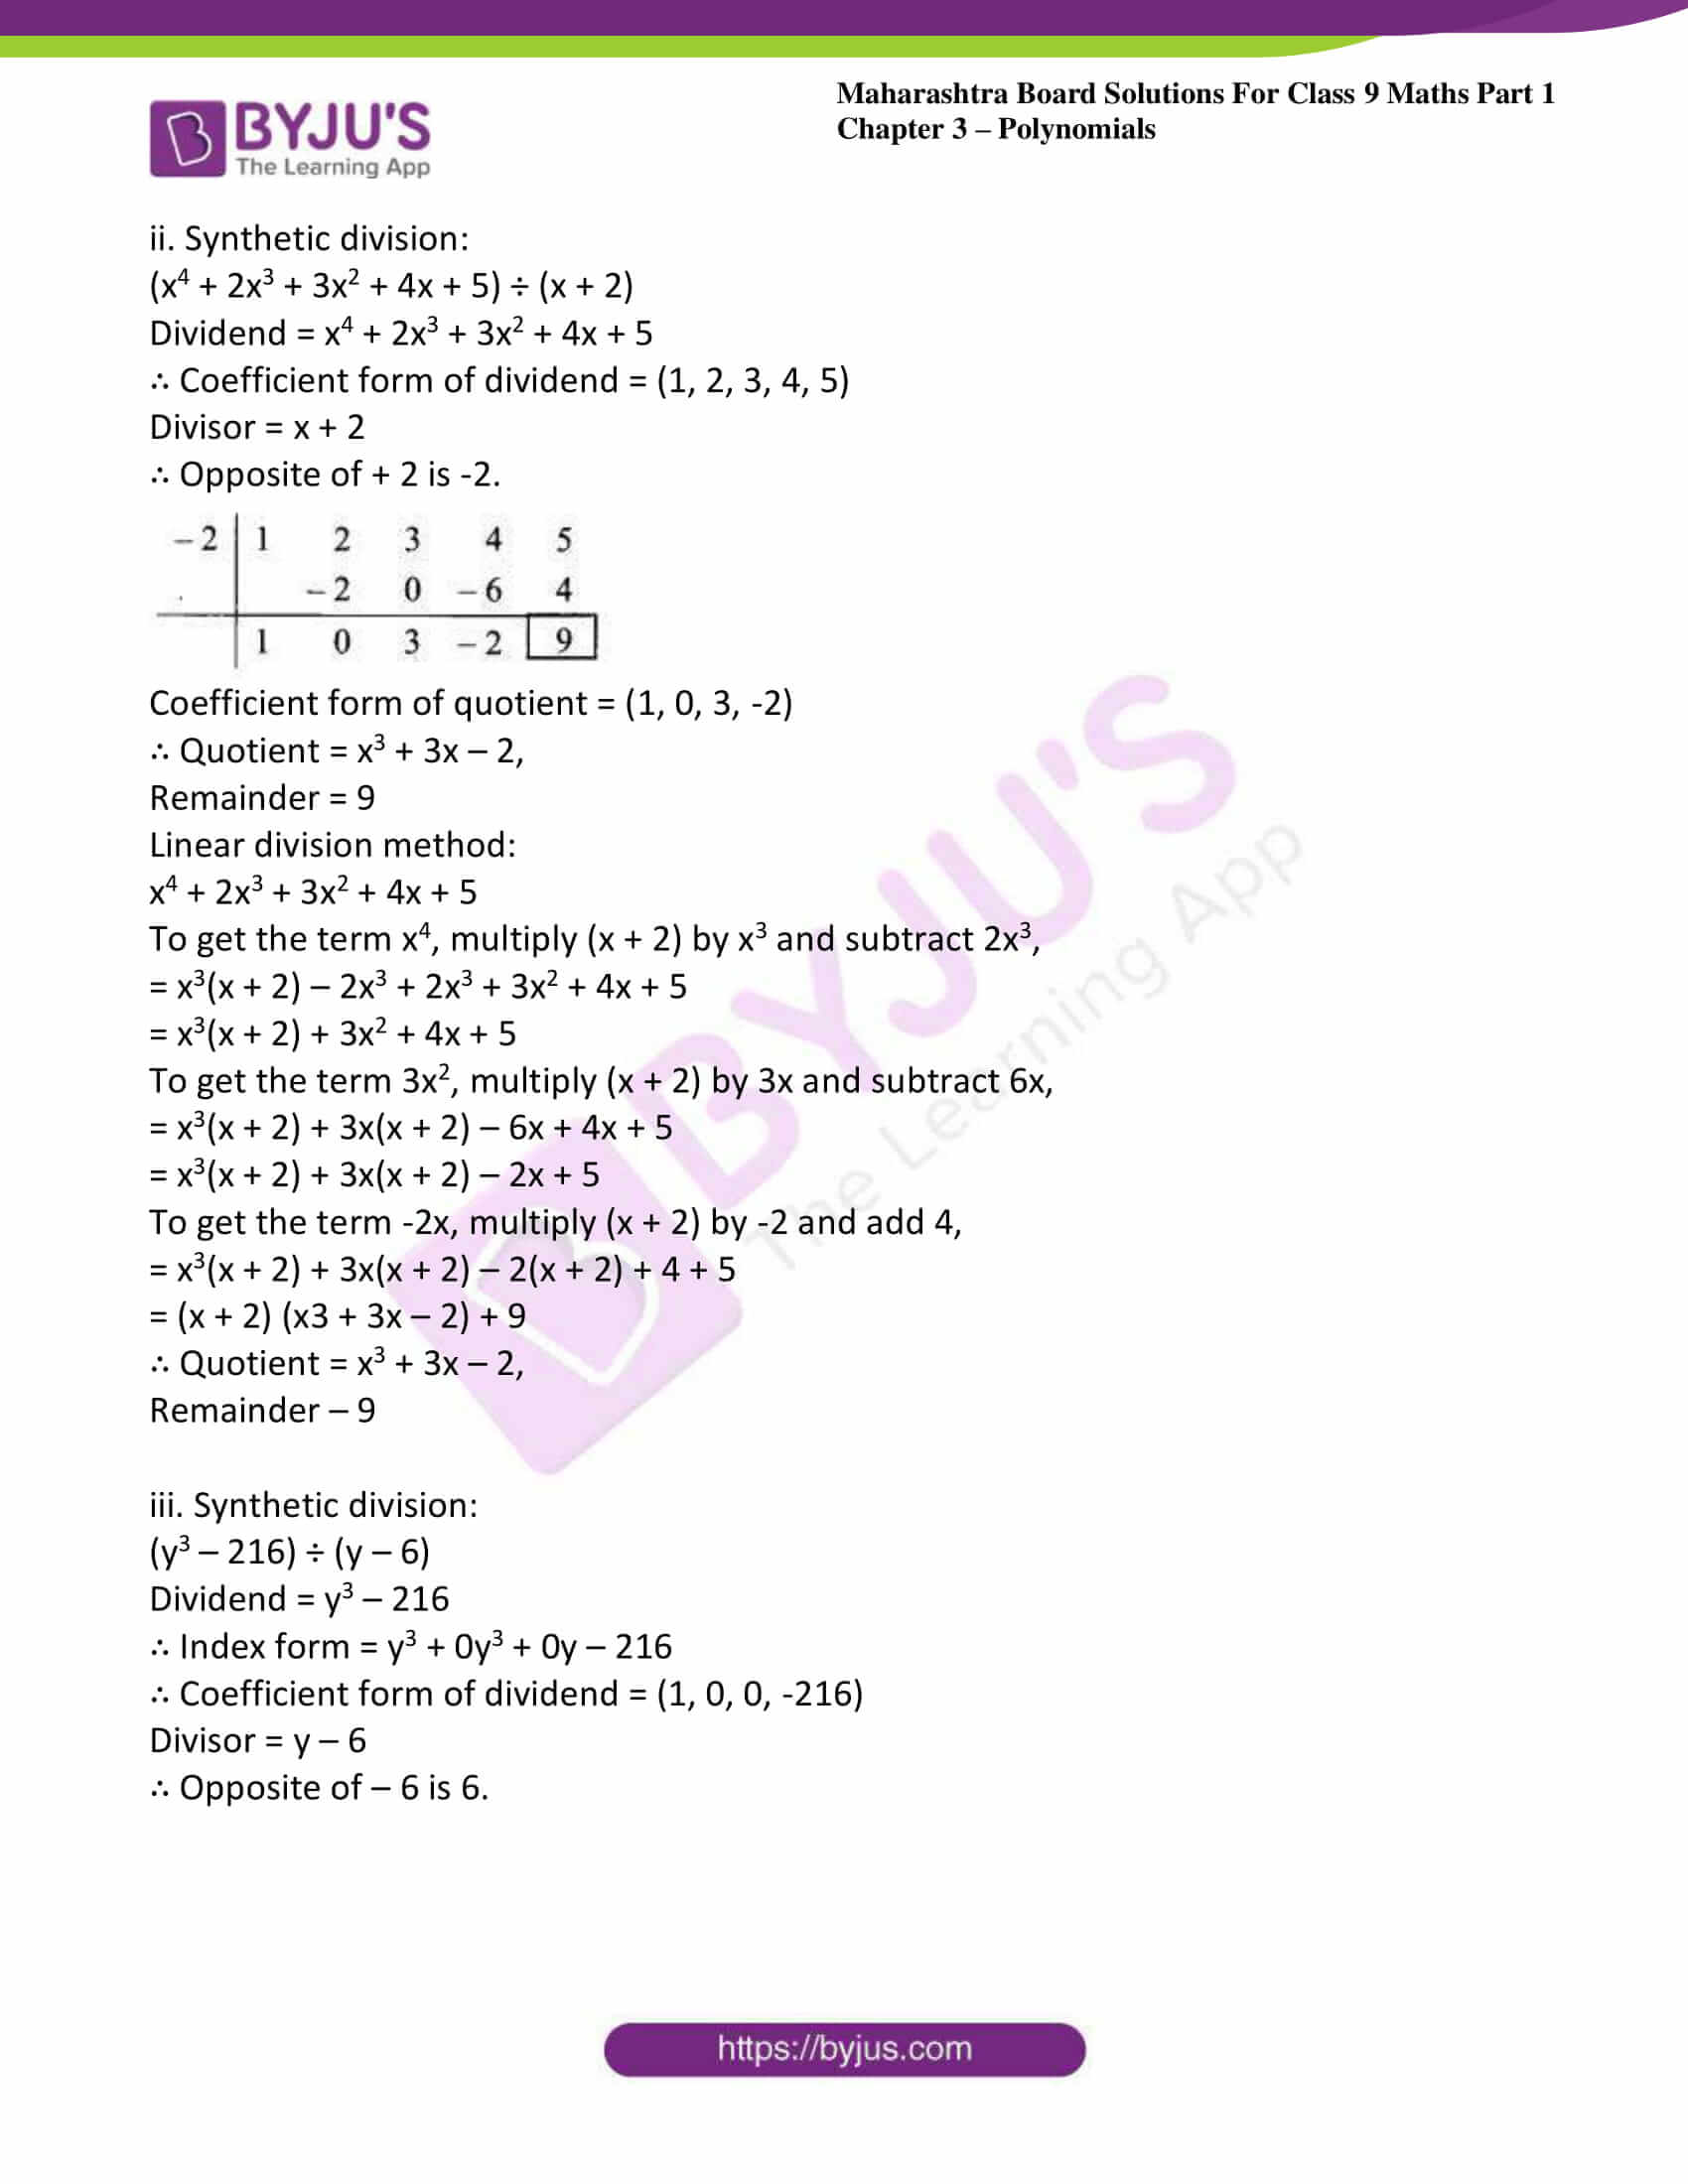 msbshse sol class 9 maths part 1 chapter 3 polynomials 14